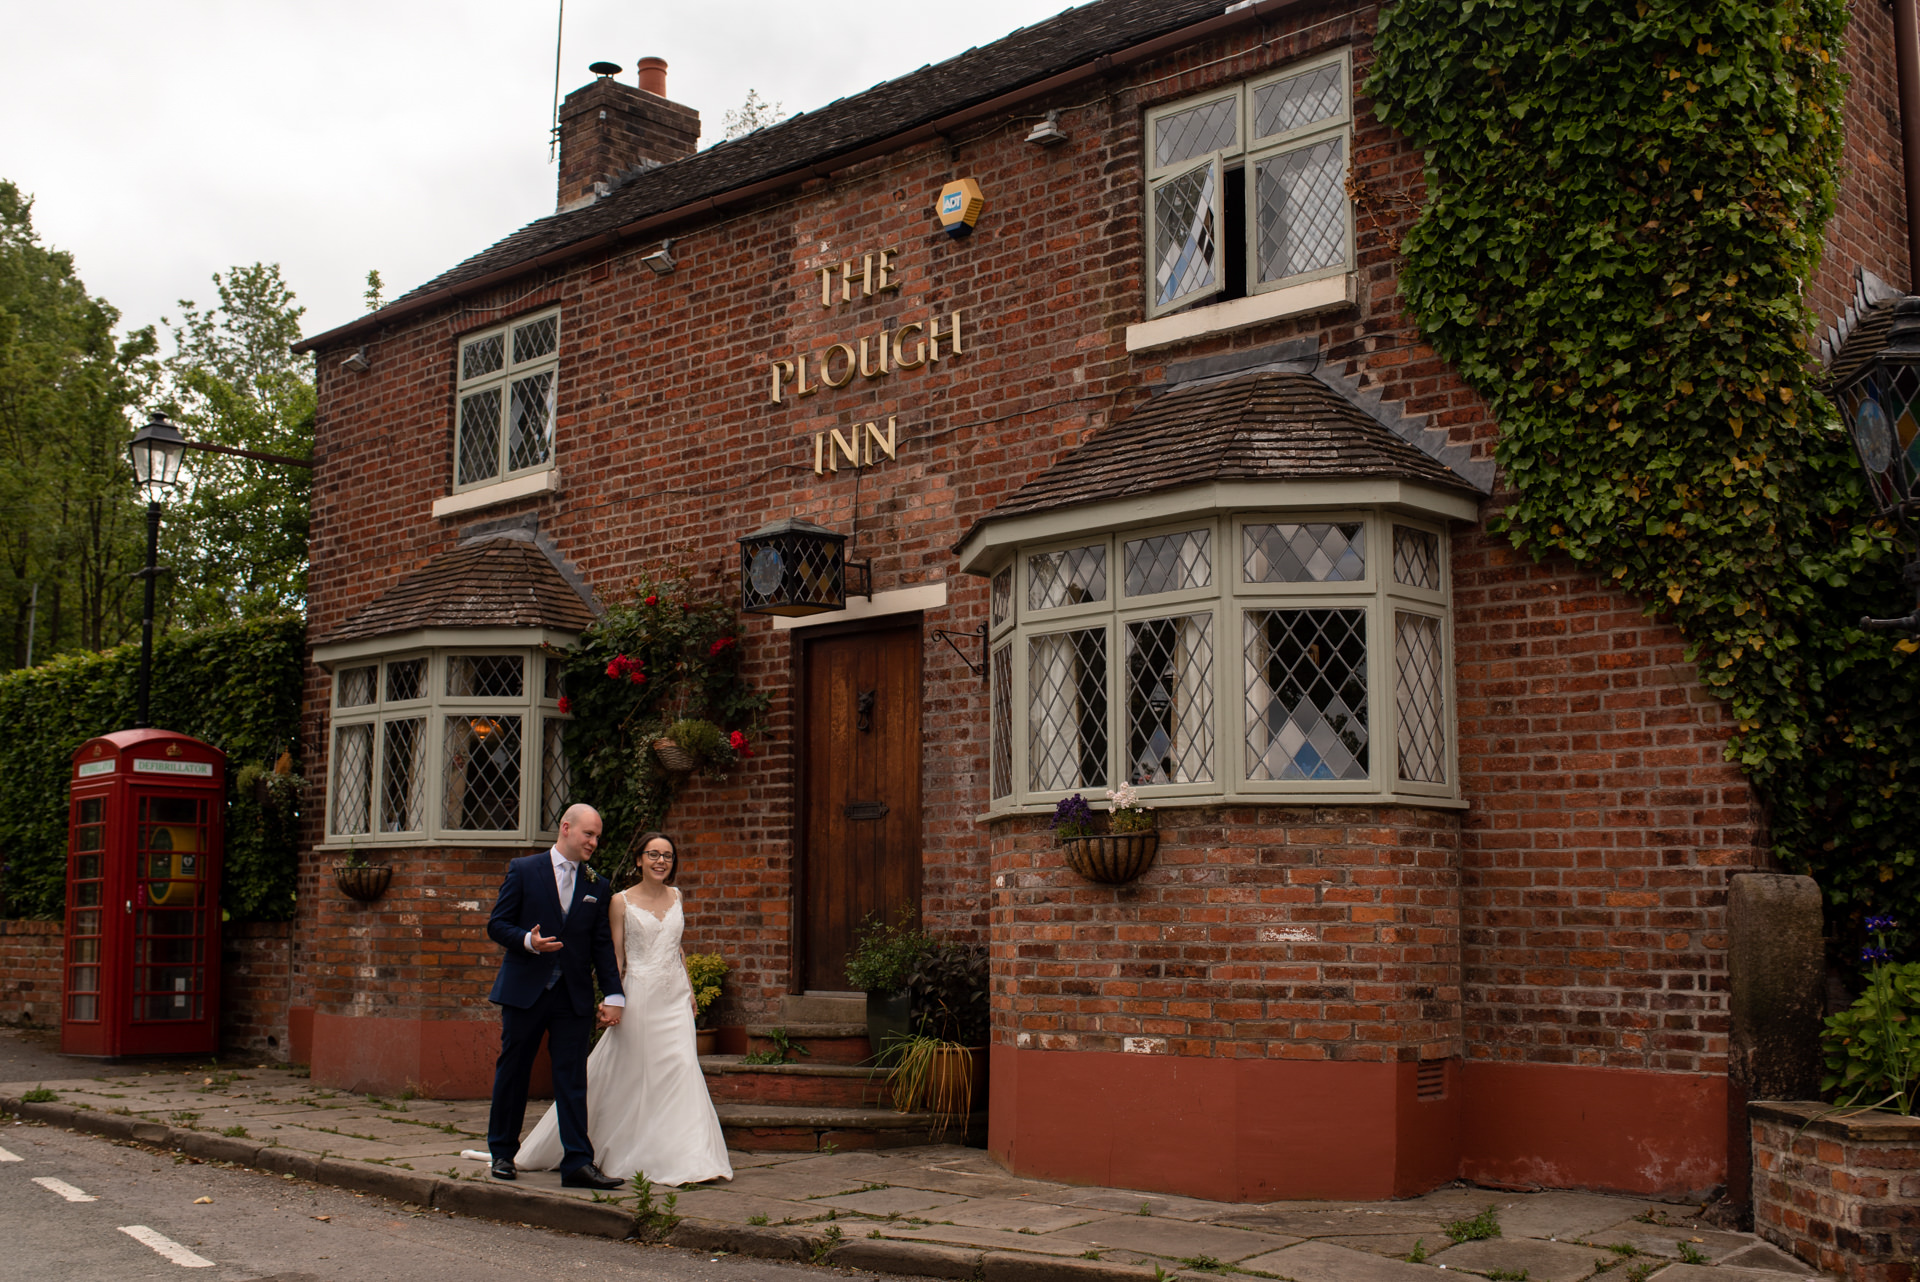 The Plough inn wedding photography